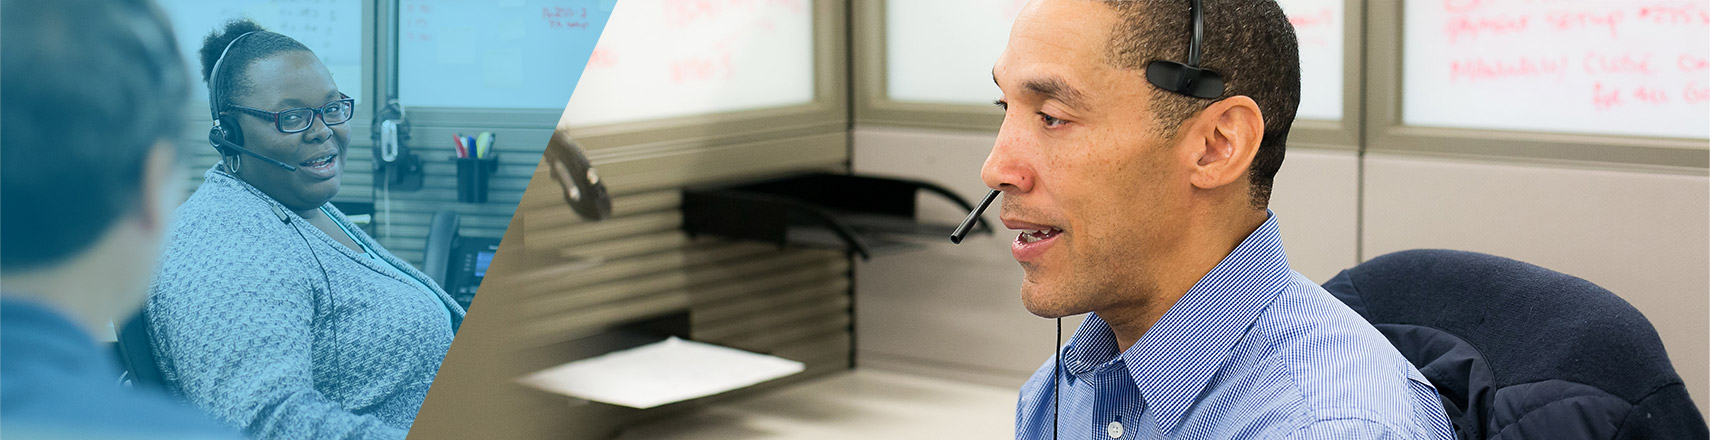 support staff on phone headset